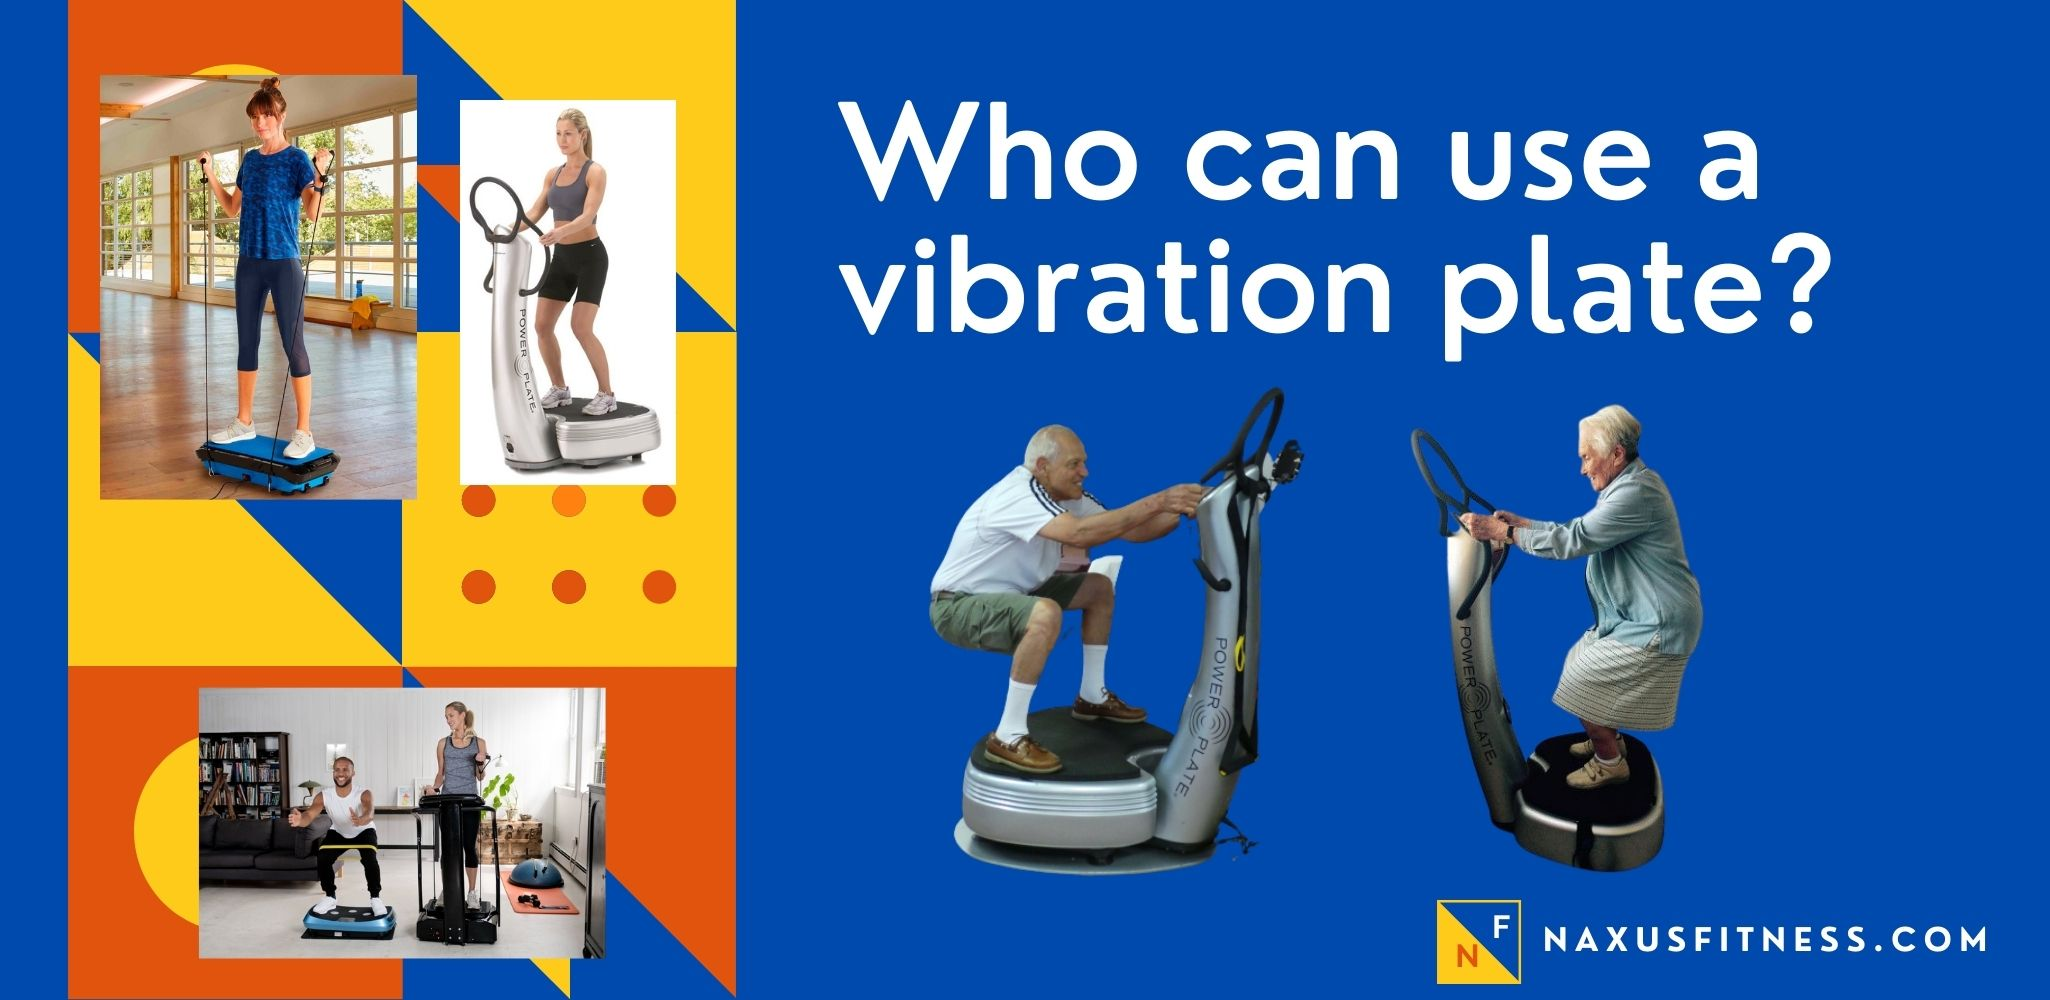 who can use a vibration plate